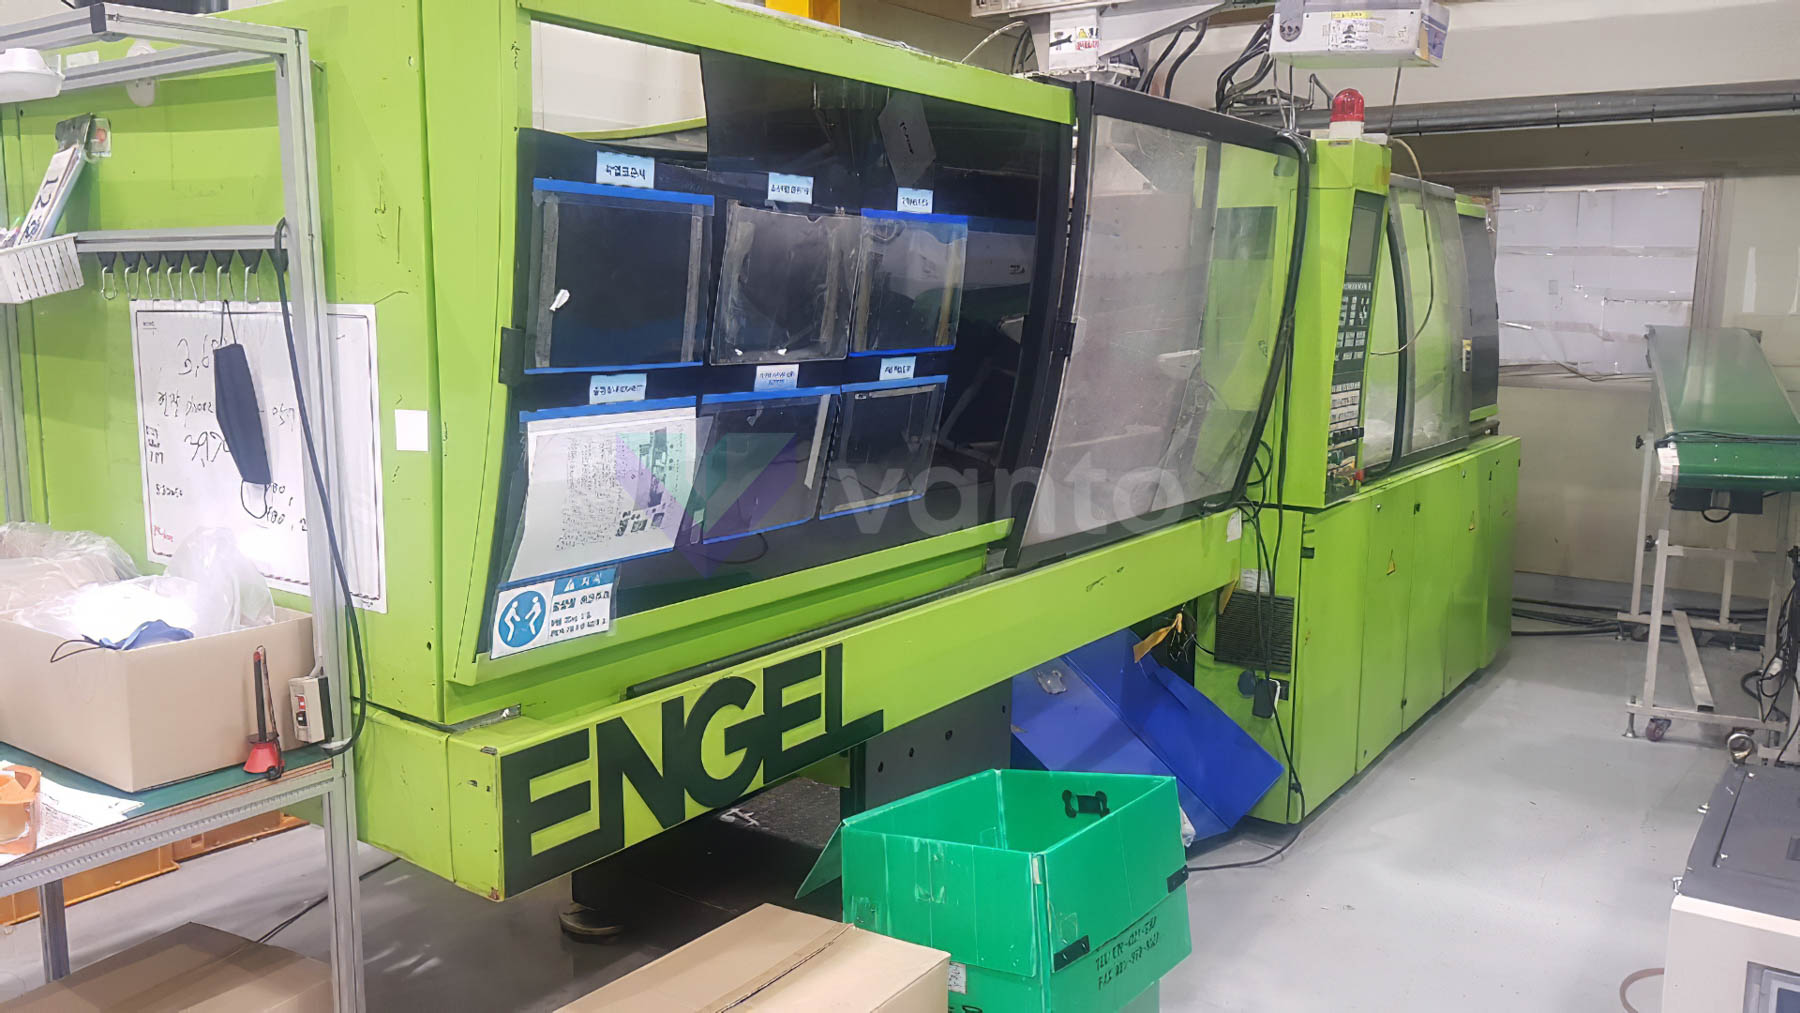 Machine de moulage par injection 125t ENGEL ES 330 / 125 HL PRO SERIES (2000) id10405